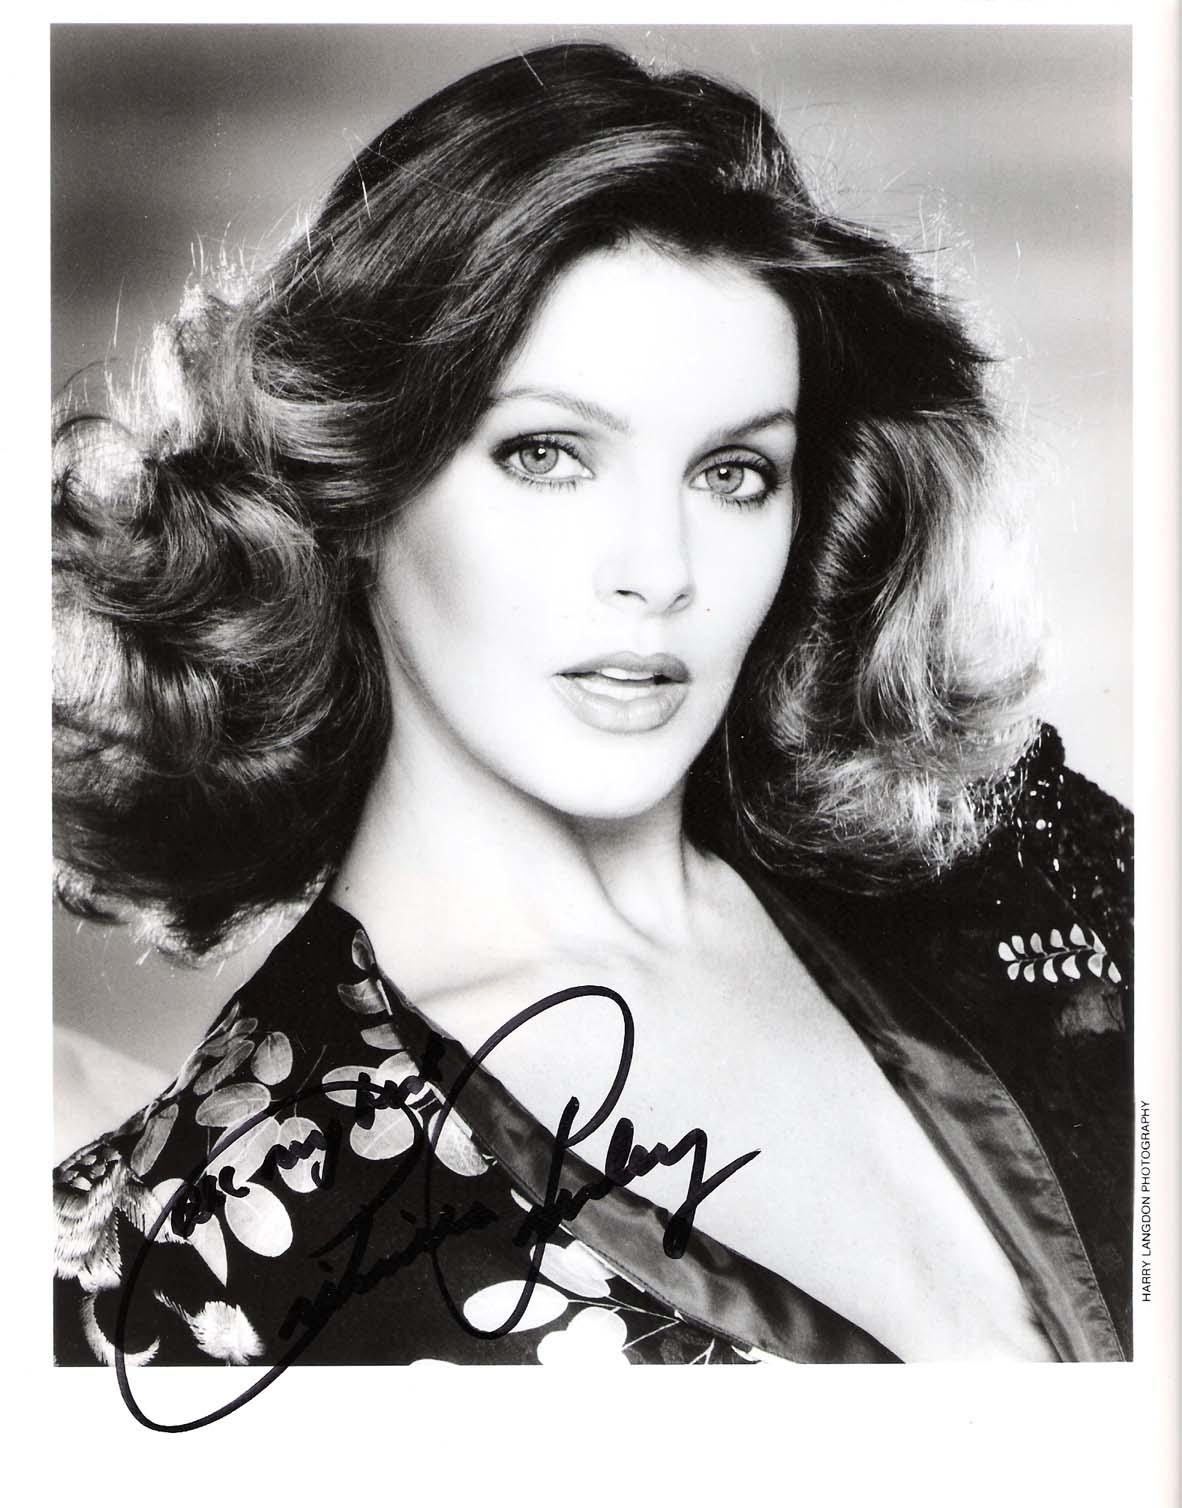 """PRISCILLA PRESLEY - Best Known for her Role in the """"NAKED GUN"""" Films and TV Series """"DALLAS"""" Signed 8x10 B/W photo"""